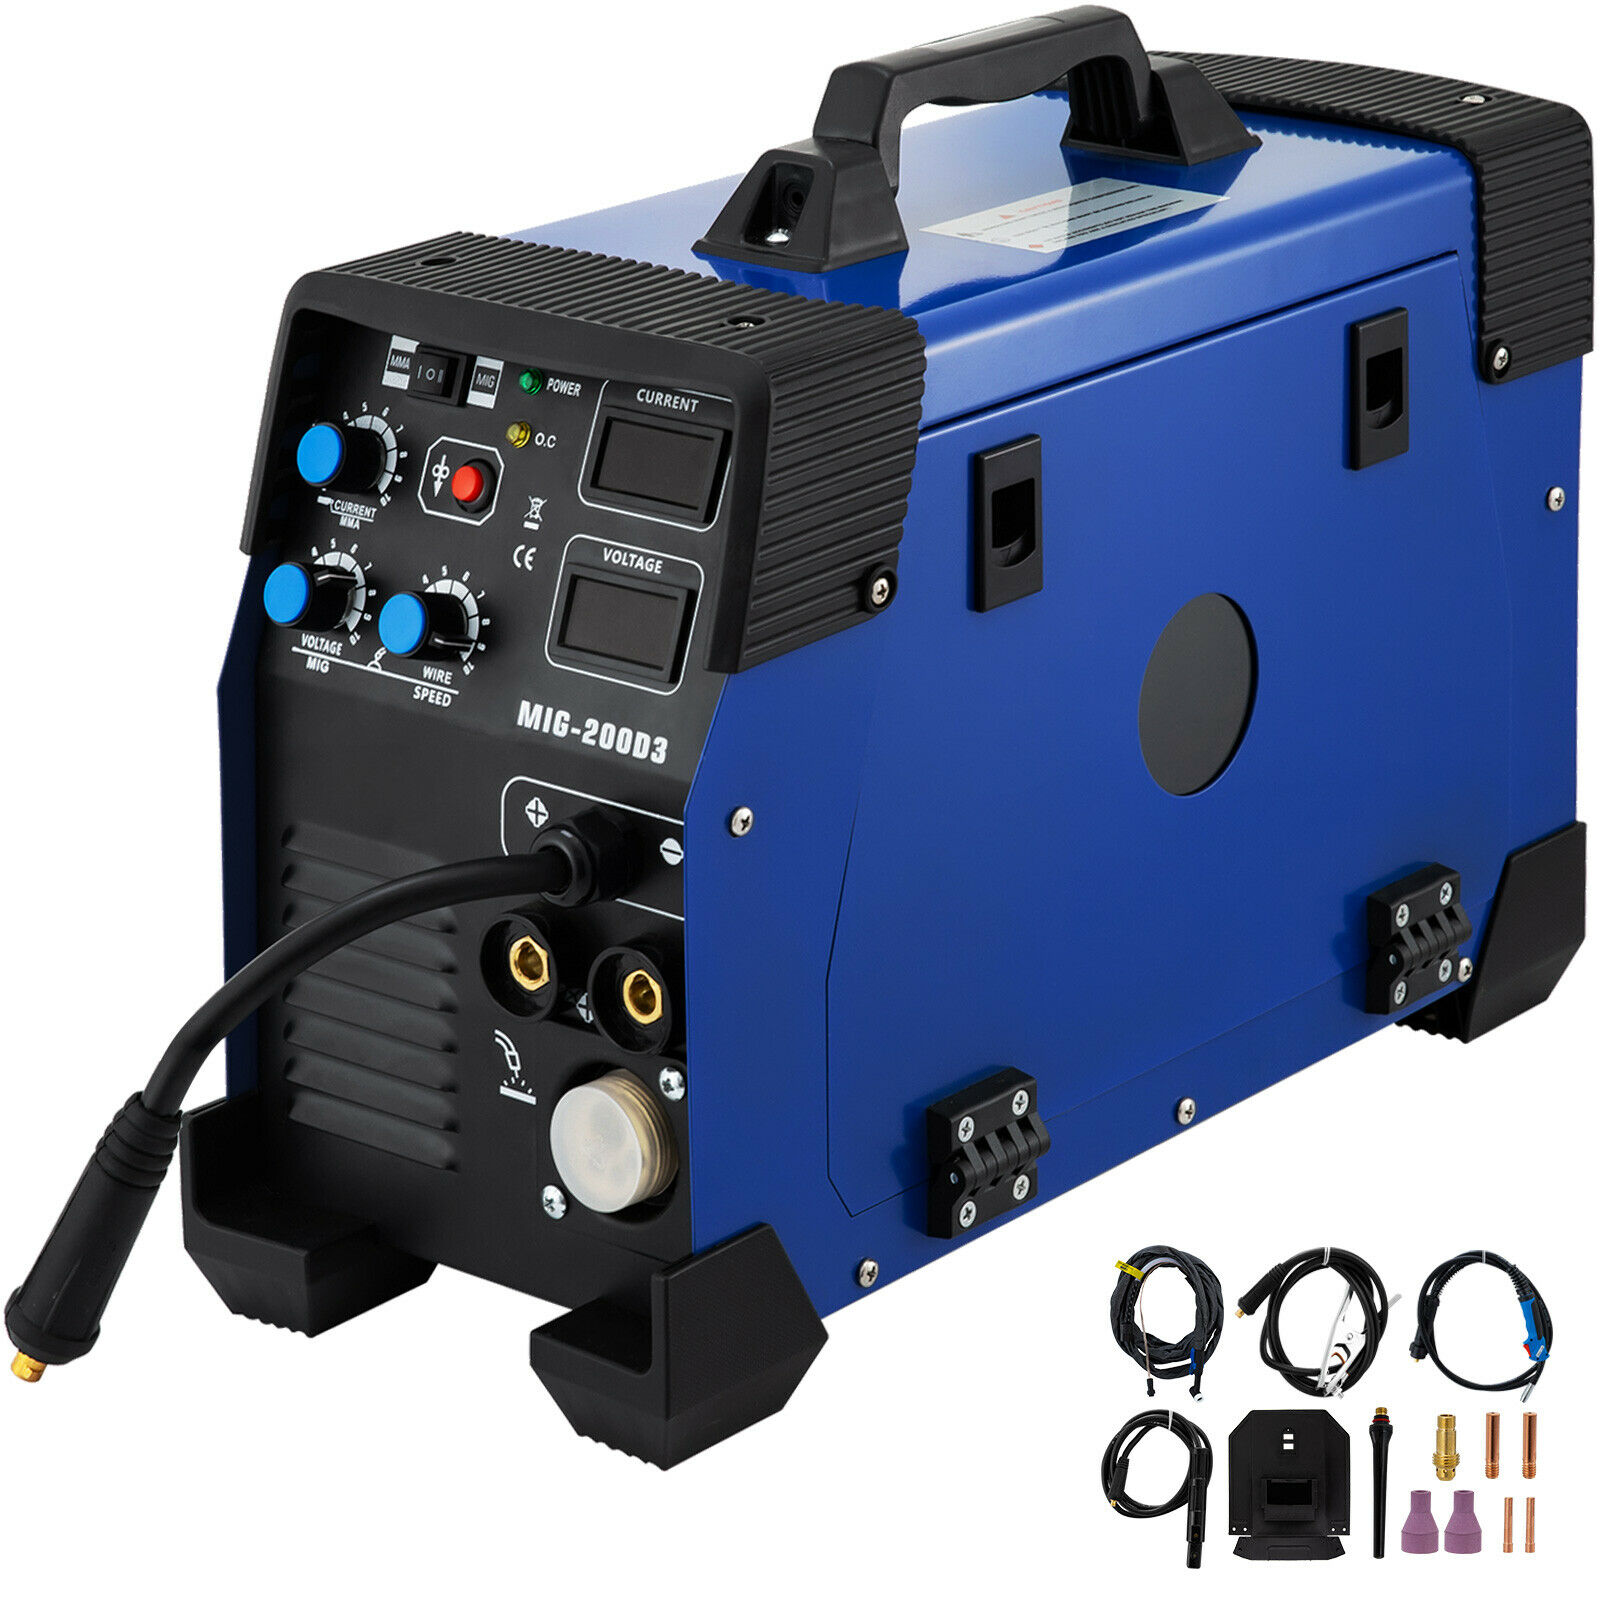 5 In 1 MIG / MAG / TIG / FLUX / MMA Inverter Welder 200Amp Combo Welding Machine Spot Welder 200A